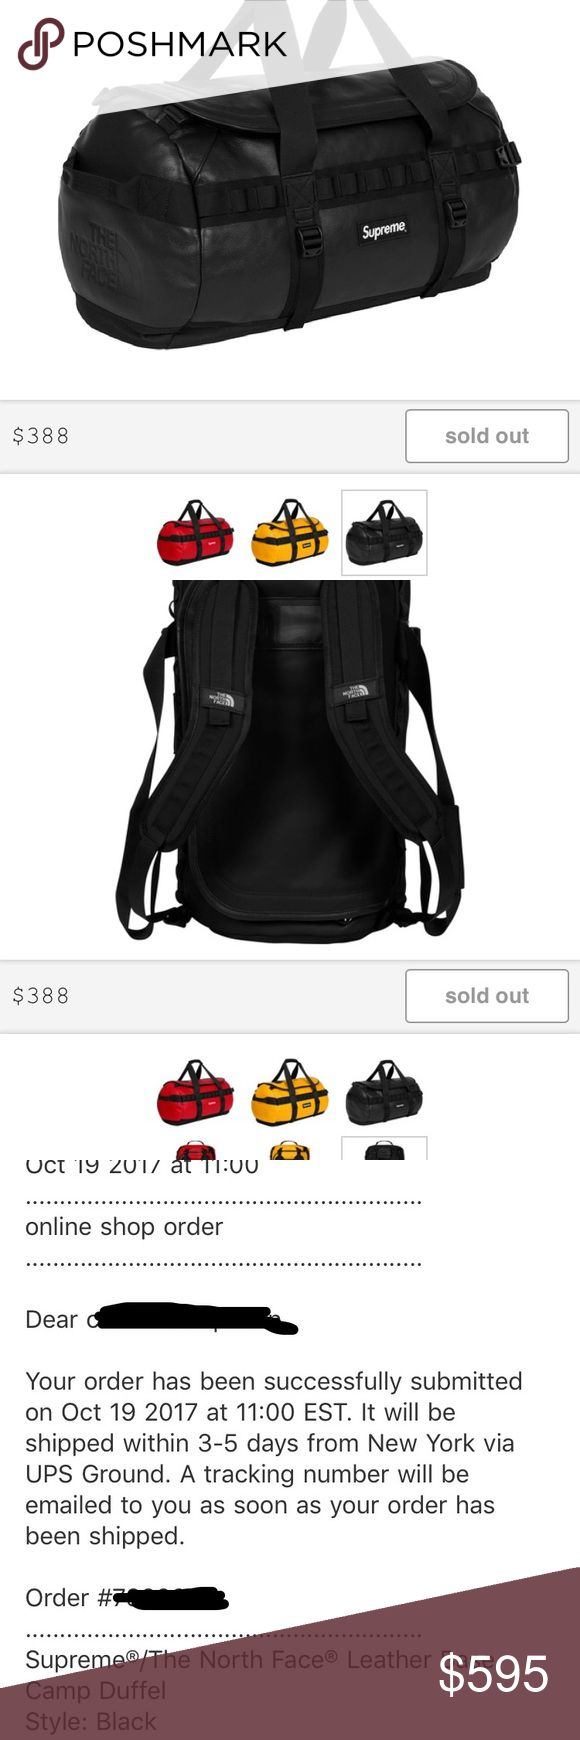 Supreme x The north face leather duffel bag black Supreme x The north face leather duffel bag fw17 in black ordered from supreme online store. confirmed shipment from supreme. It will take about a week to get to me once I receive the item I will ship it out immediately. Will come with supreme box logo sticker. supreme Bags Duffel Bags